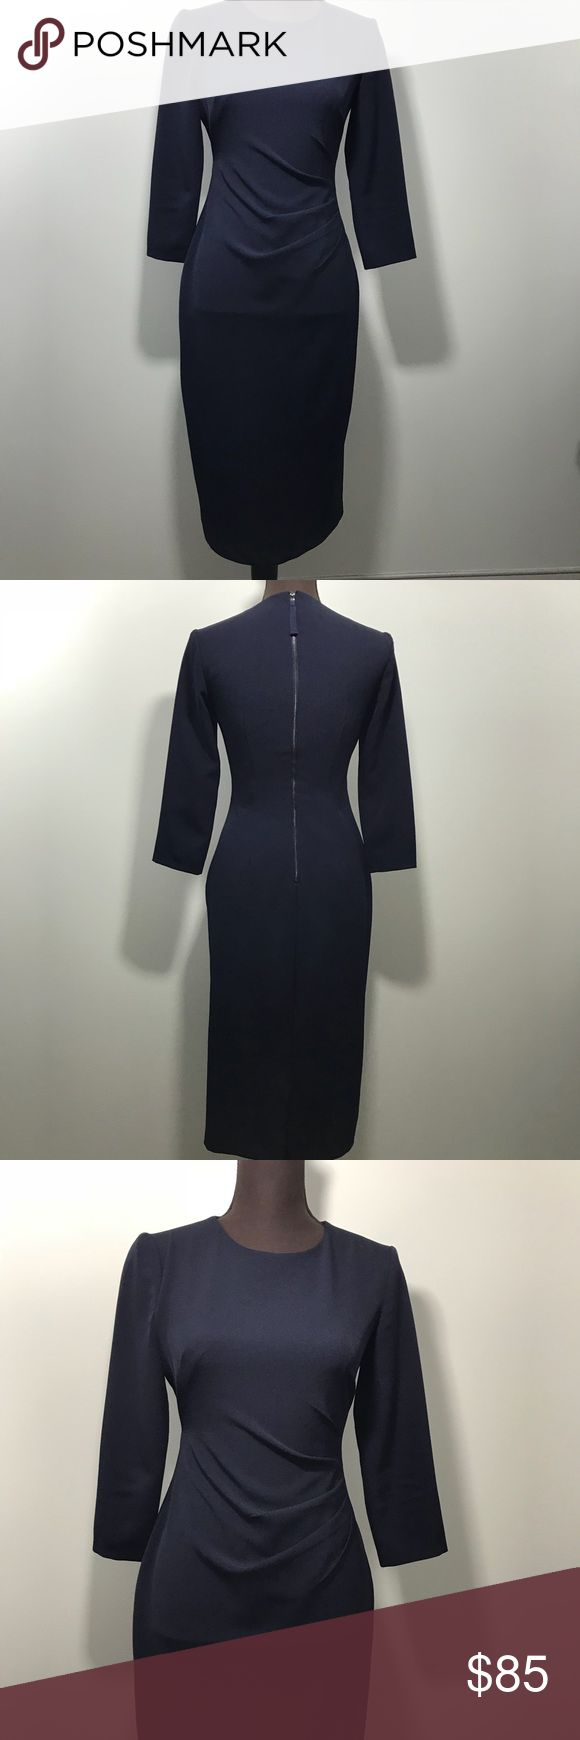 Maggy London Ruched Zipper Back Dress Maggy London Ruched Zipper Back Dress...This beautiful cut Dress is perfect for many events (weddings, work,etc.). Offers considered. Maggy London Dresses